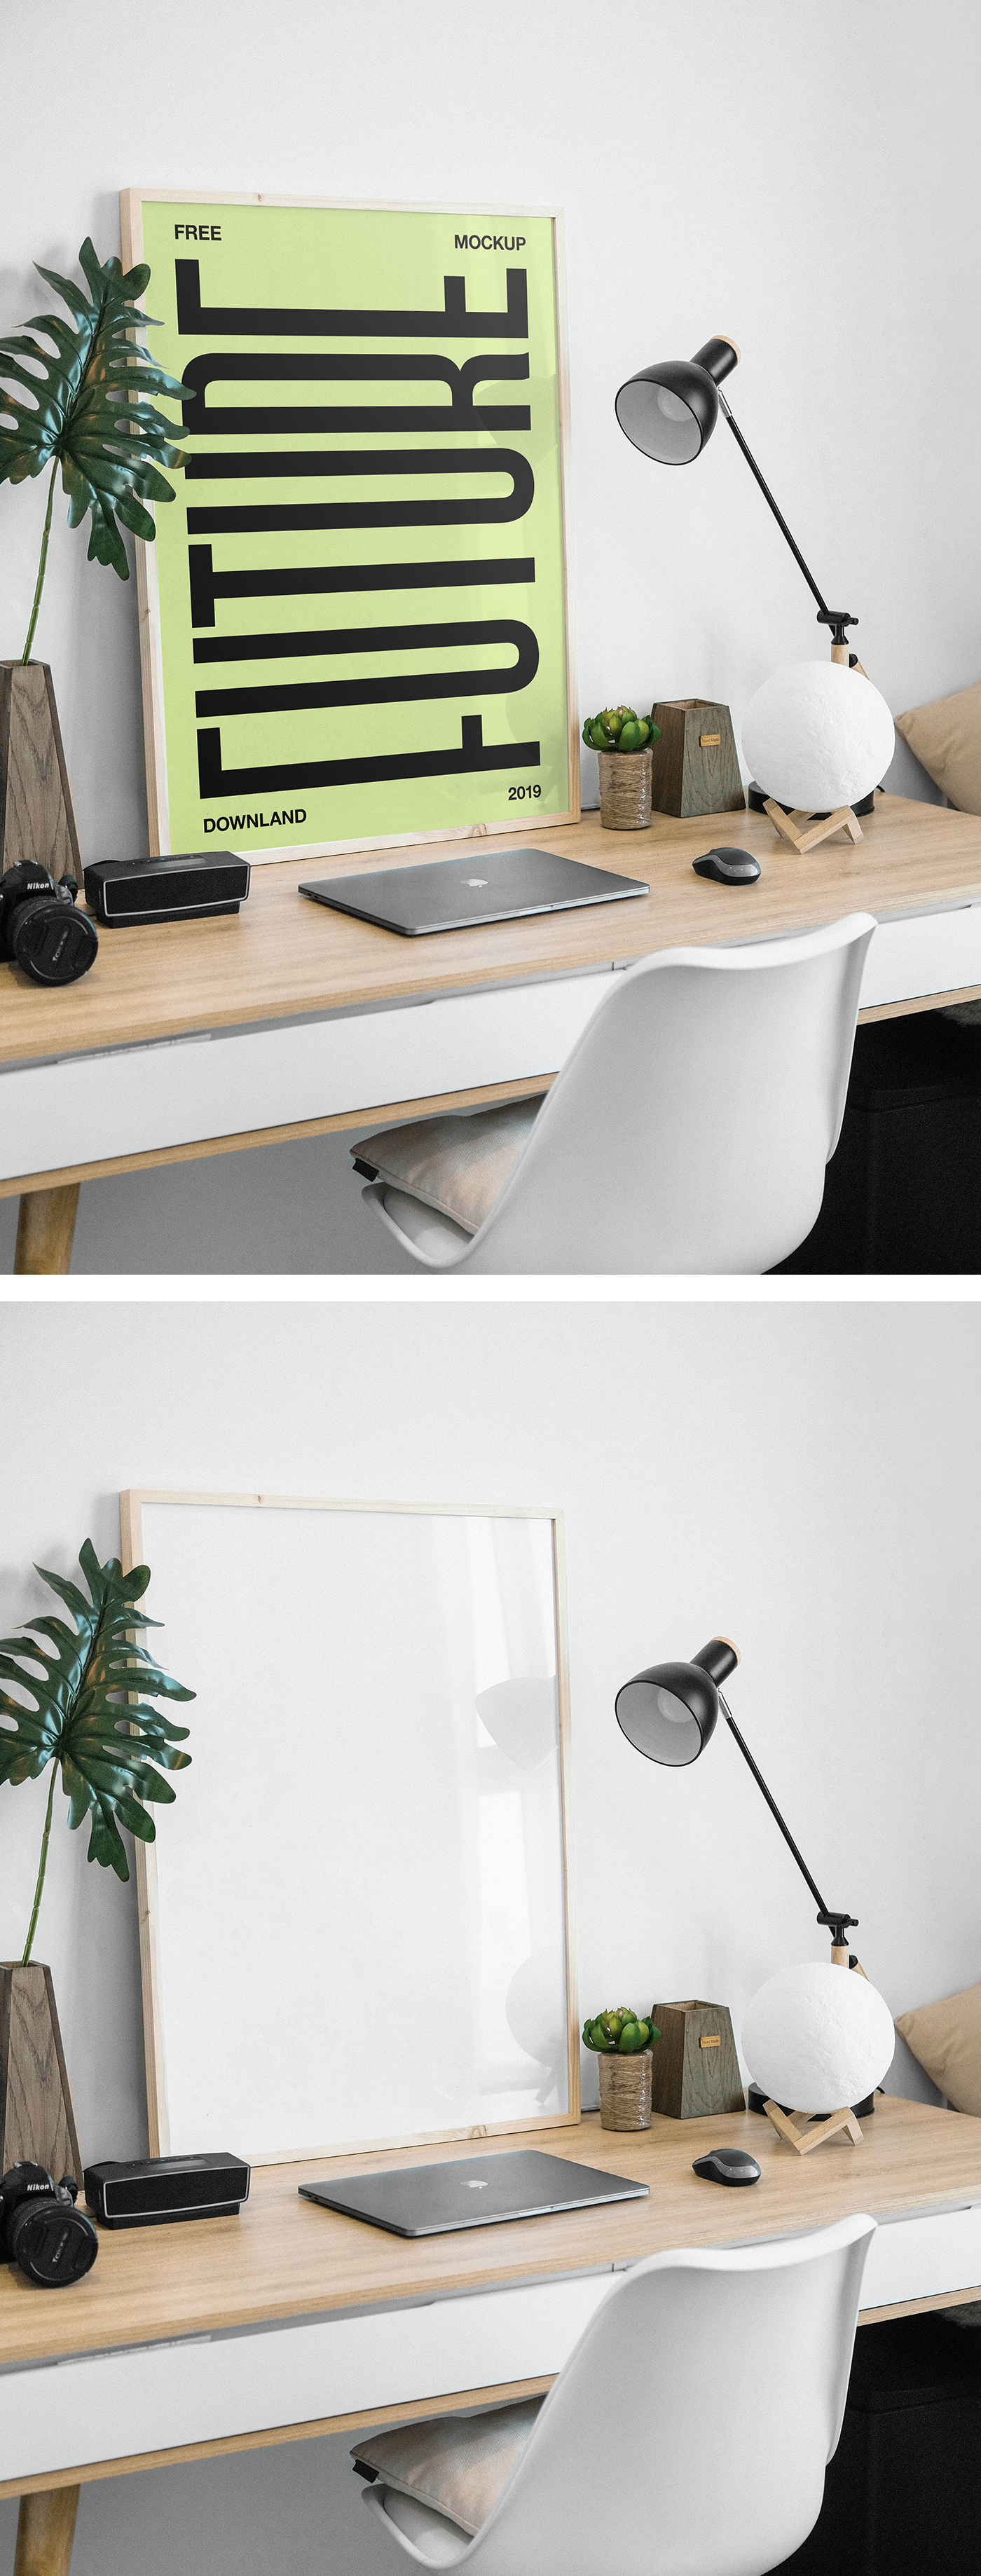 Picture Frame on Desk Mockup